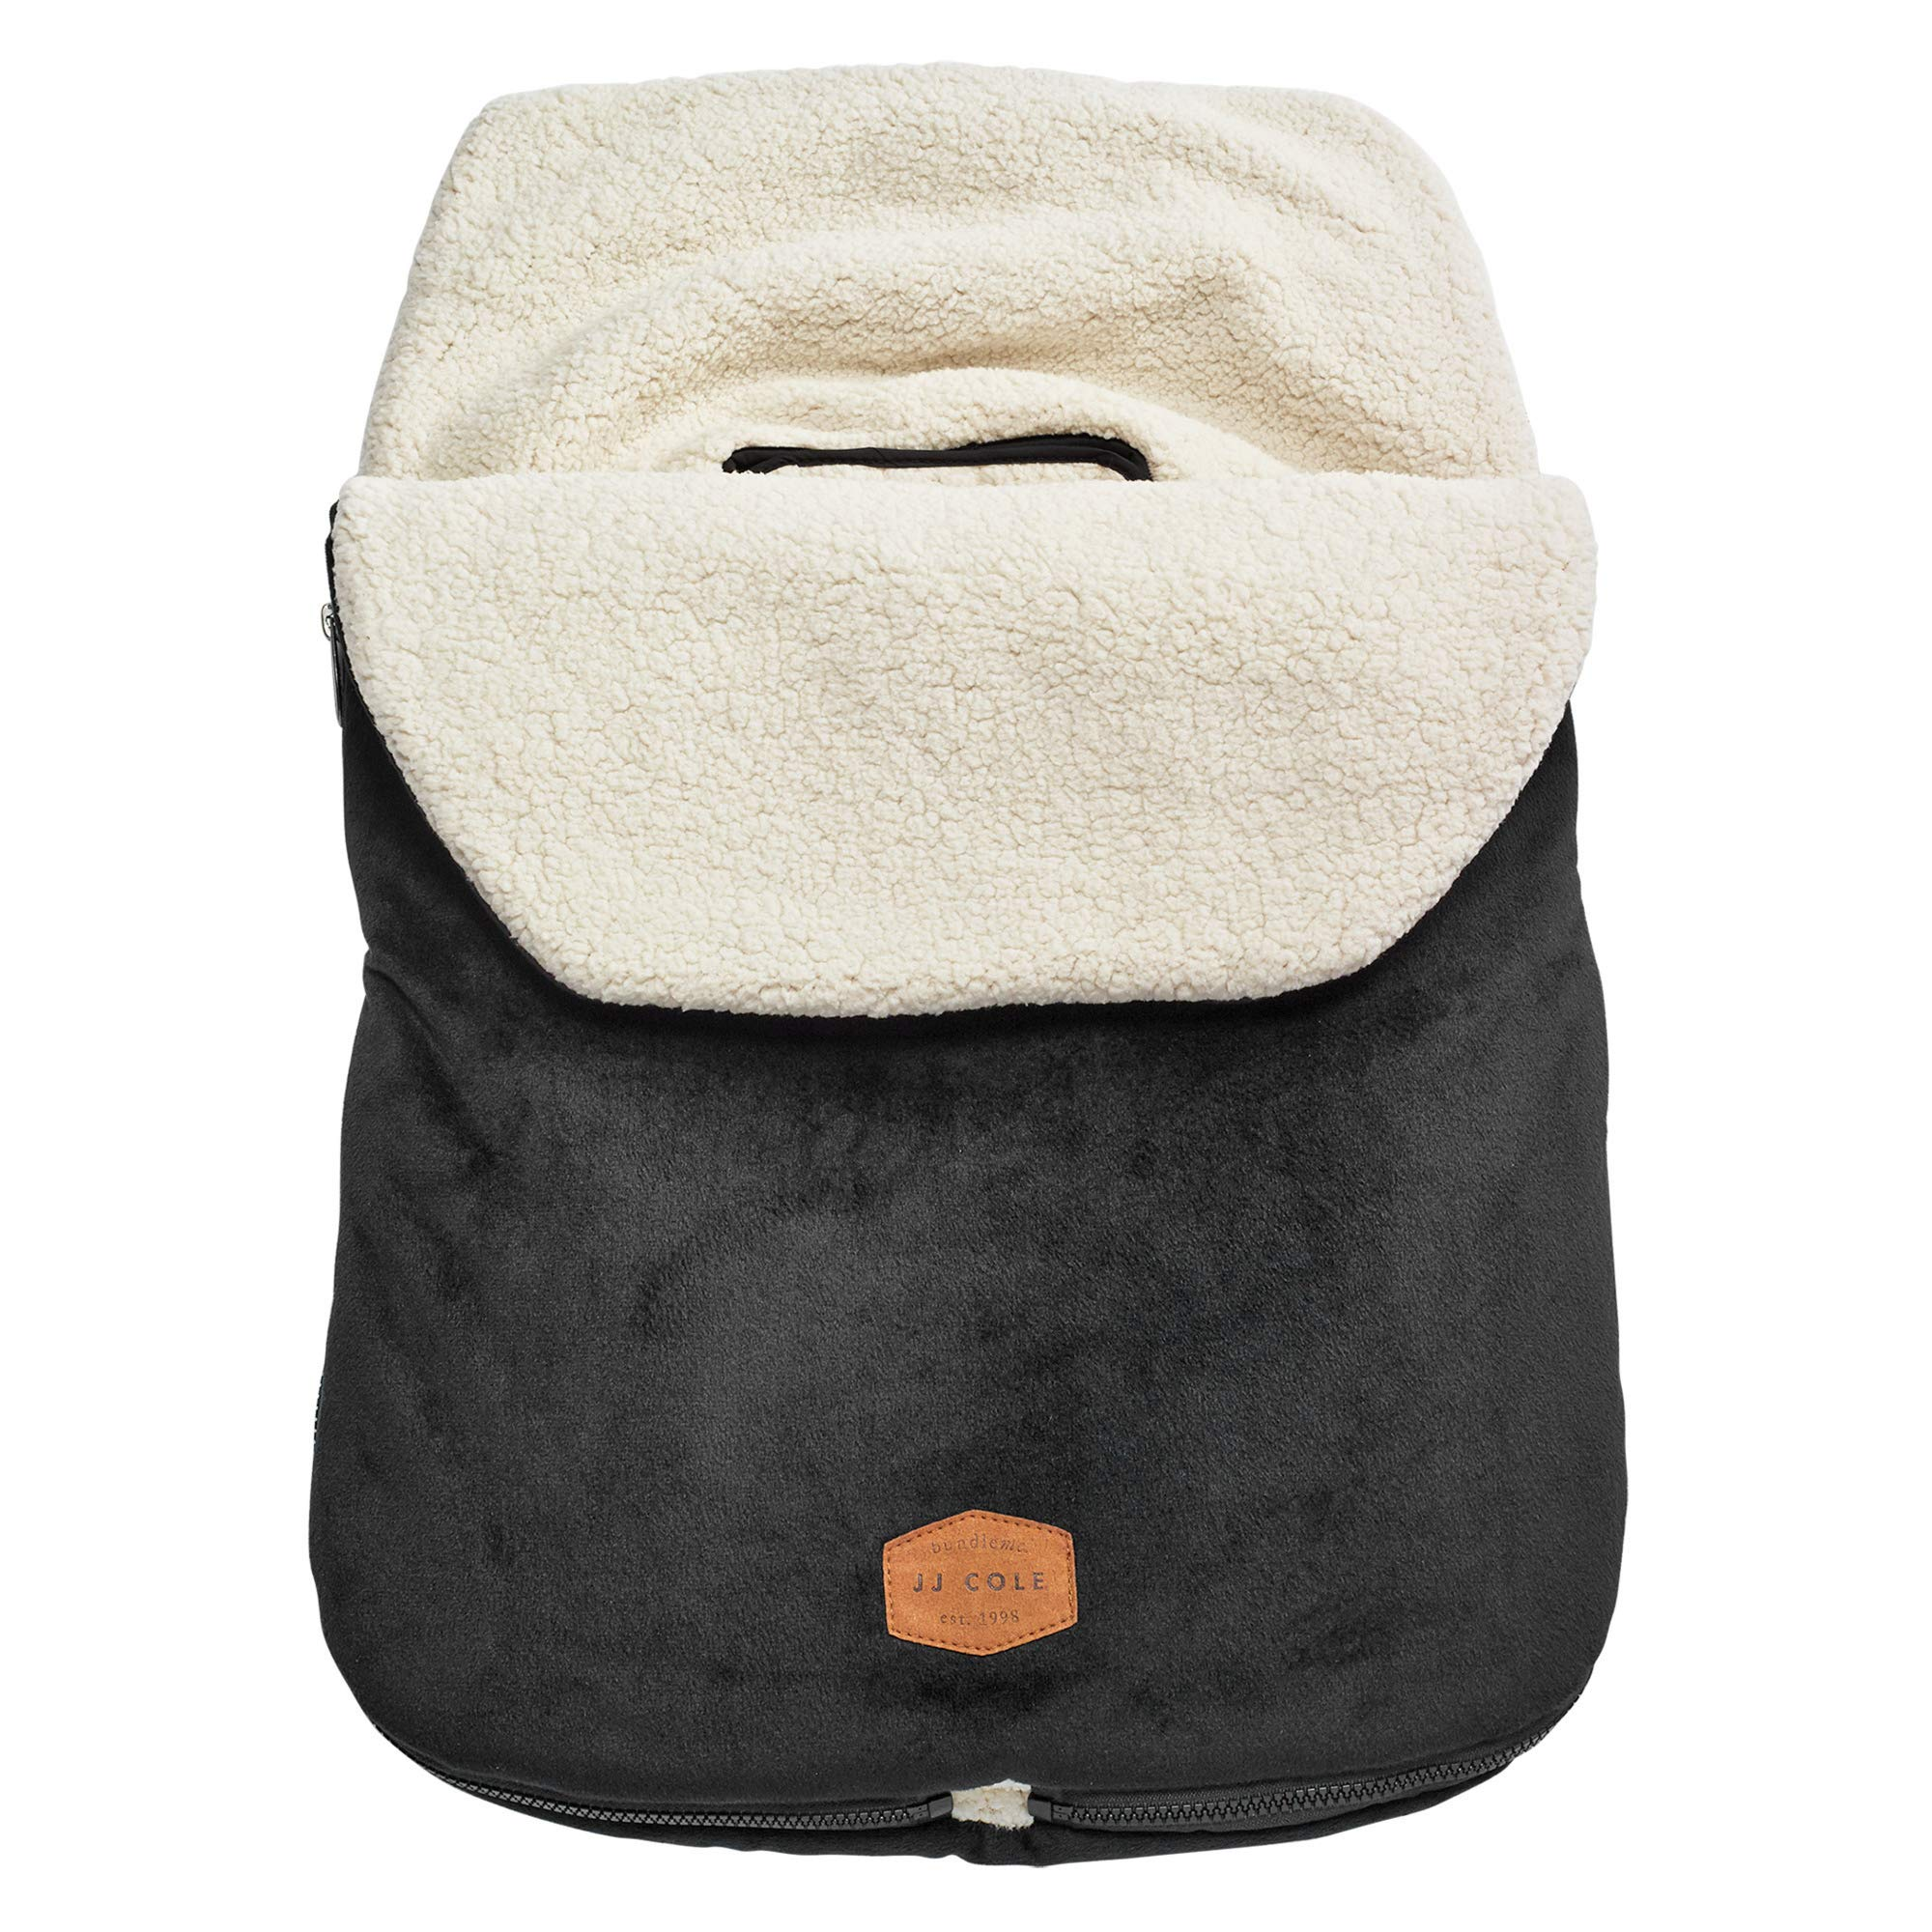 JJ Cole - Original Bundleme, Canopy Style Bunting Bag to Protect Baby from Cold and Winter Weather in Car Seats and Strollers, Blackout, Infant